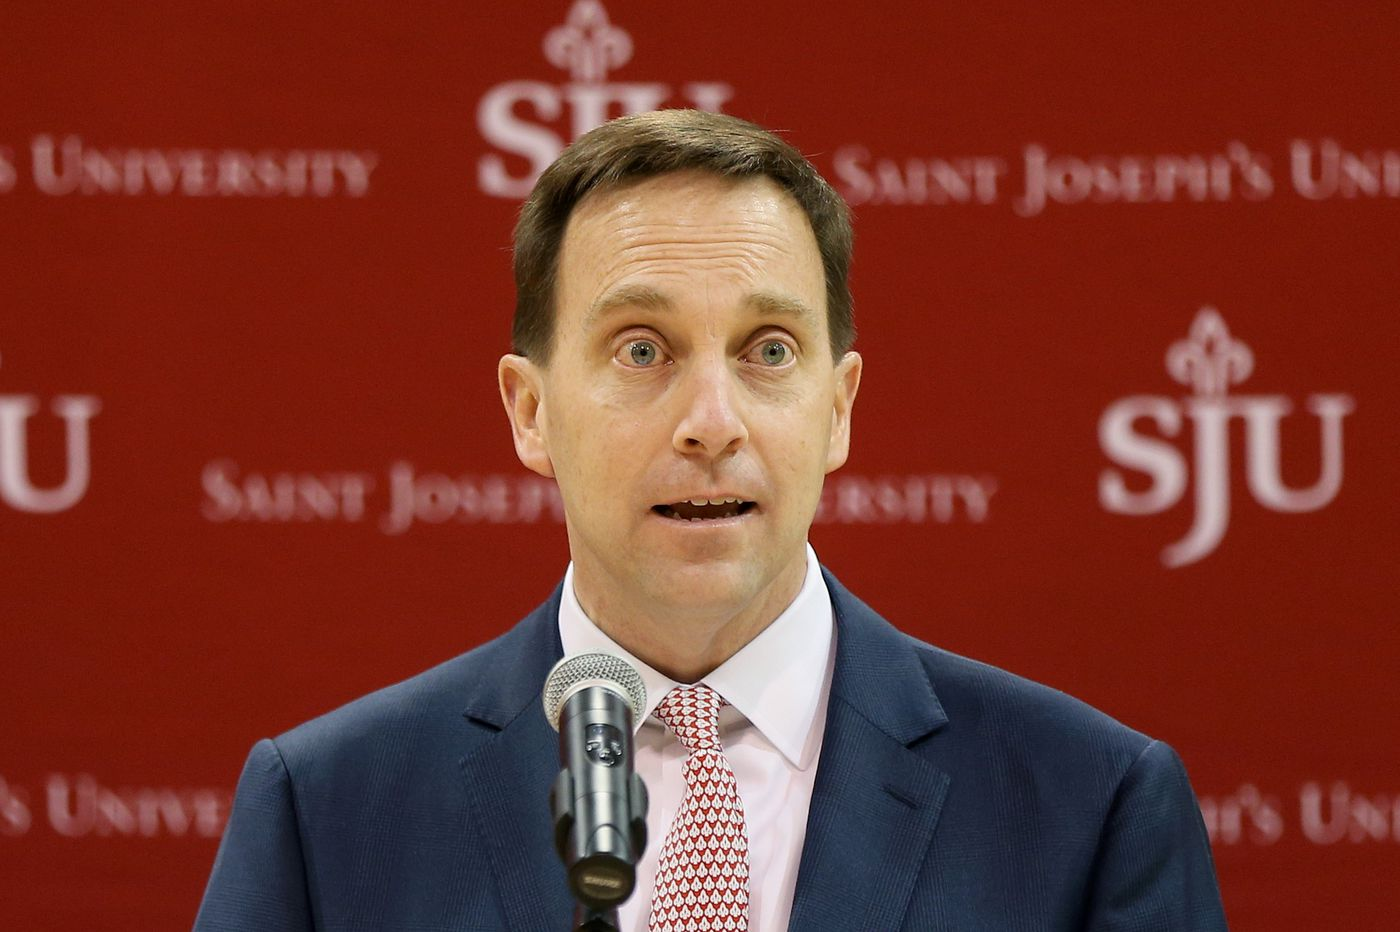 St. Joe's announces its first new school in 30 years, and it's all about health